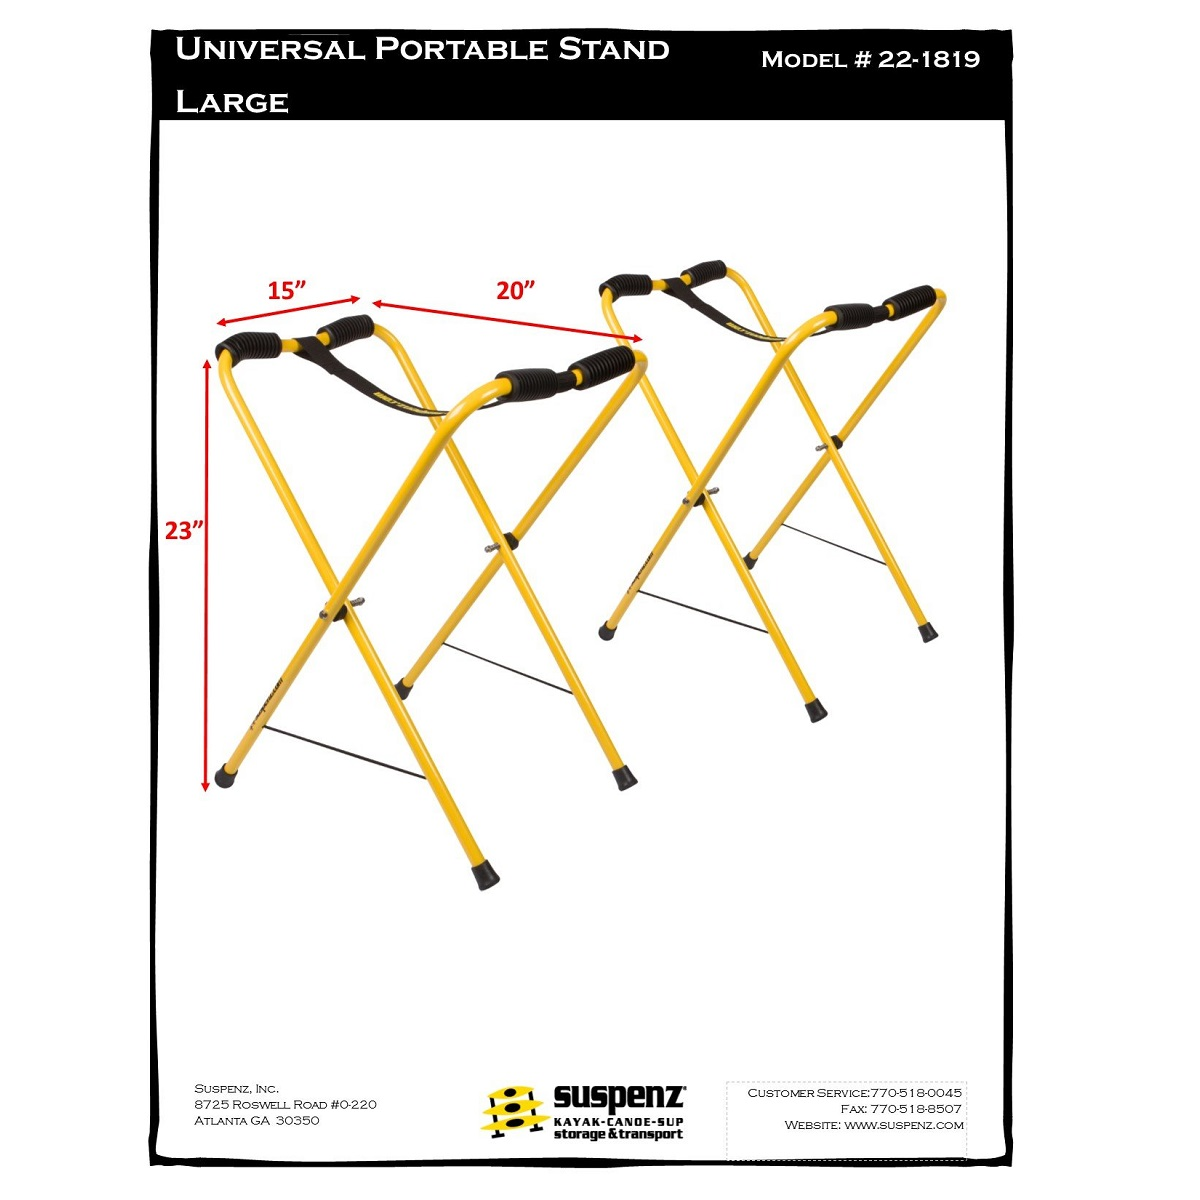 Suspenz Universal Portable Boat Stands - Large Dims